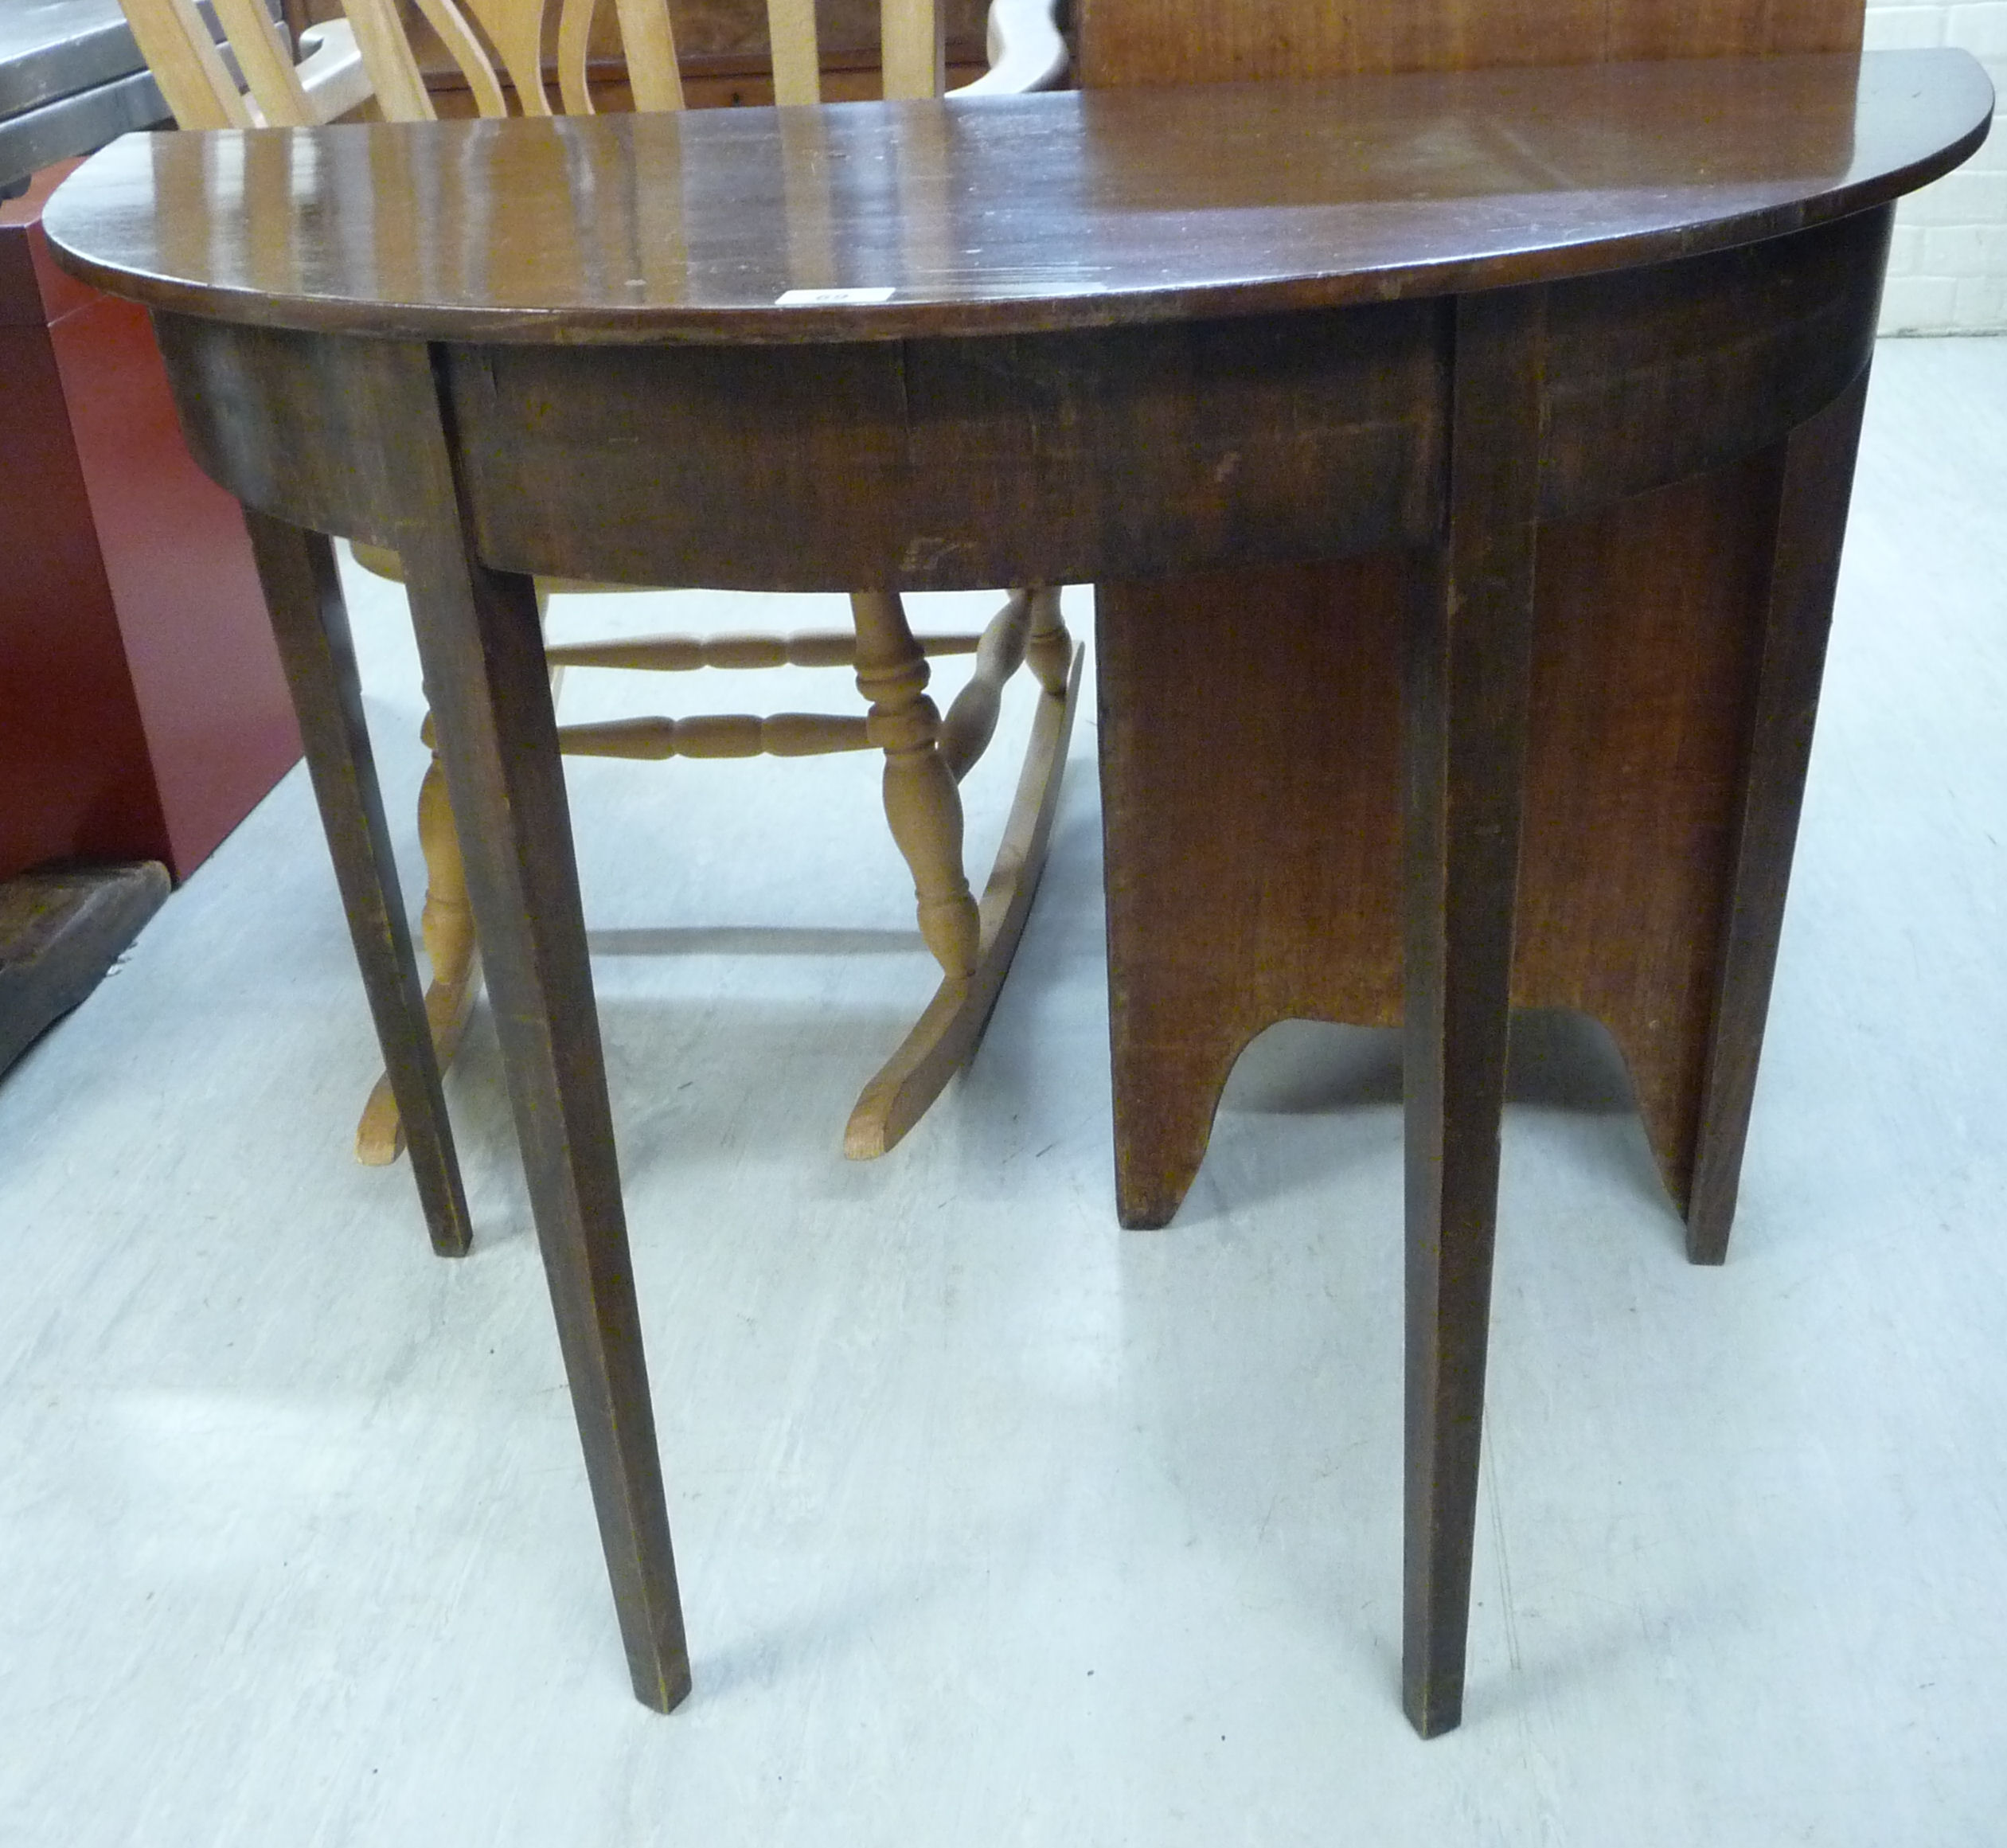 Lot 69 - An early 20thC mahogany demi-lune console table with a straight apron, raised on square,